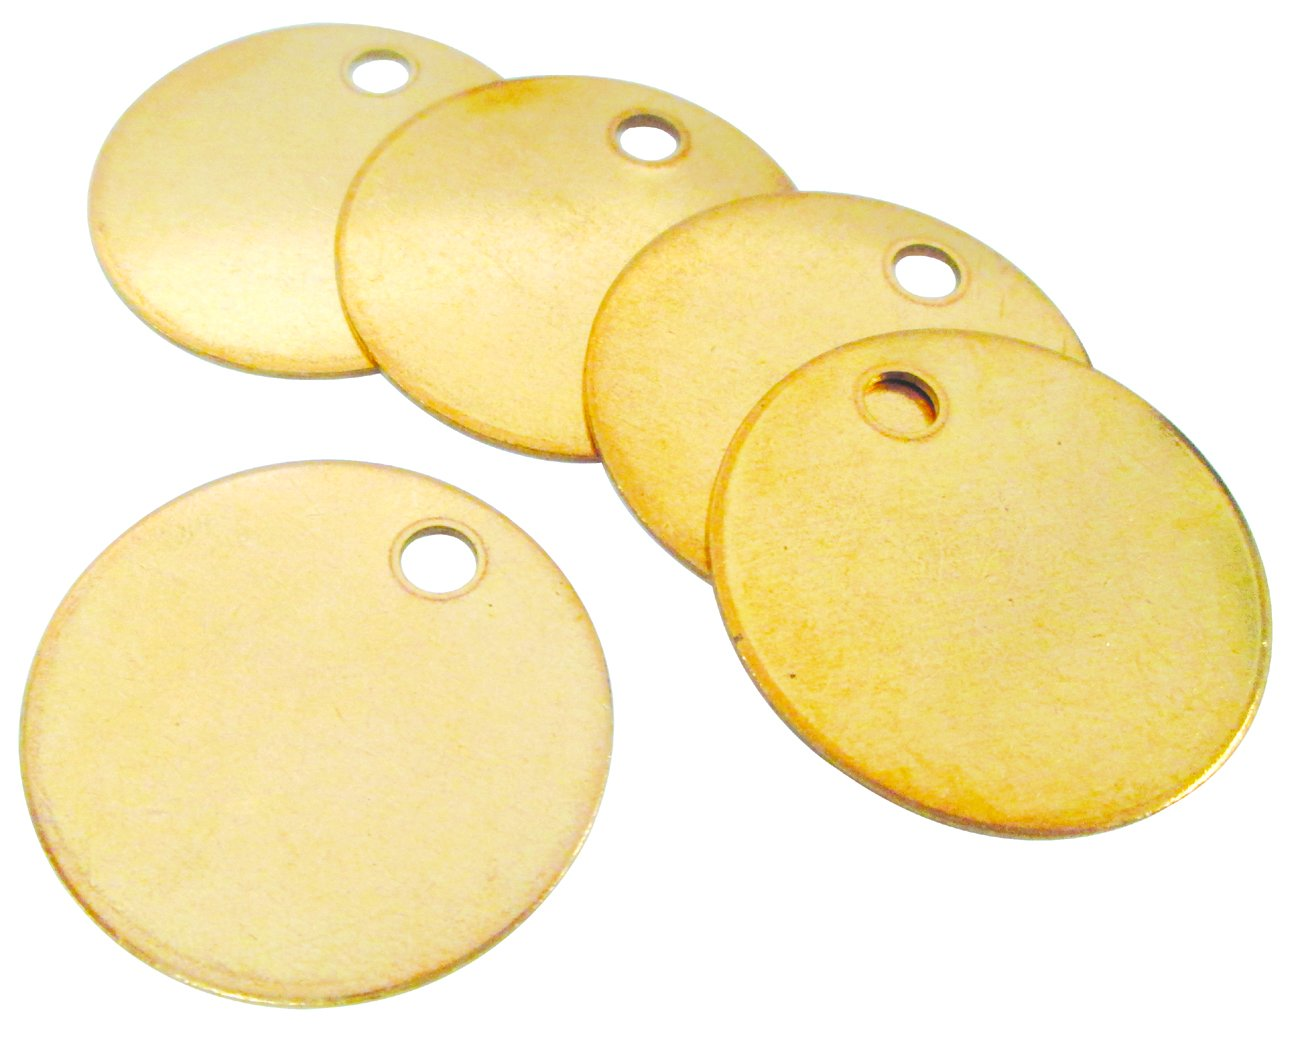 CH Hanson Blank Metal Tags - 1 1/4'' Round with Hole, Brass 18 Gauge, Model 1090B  - 100 Pack